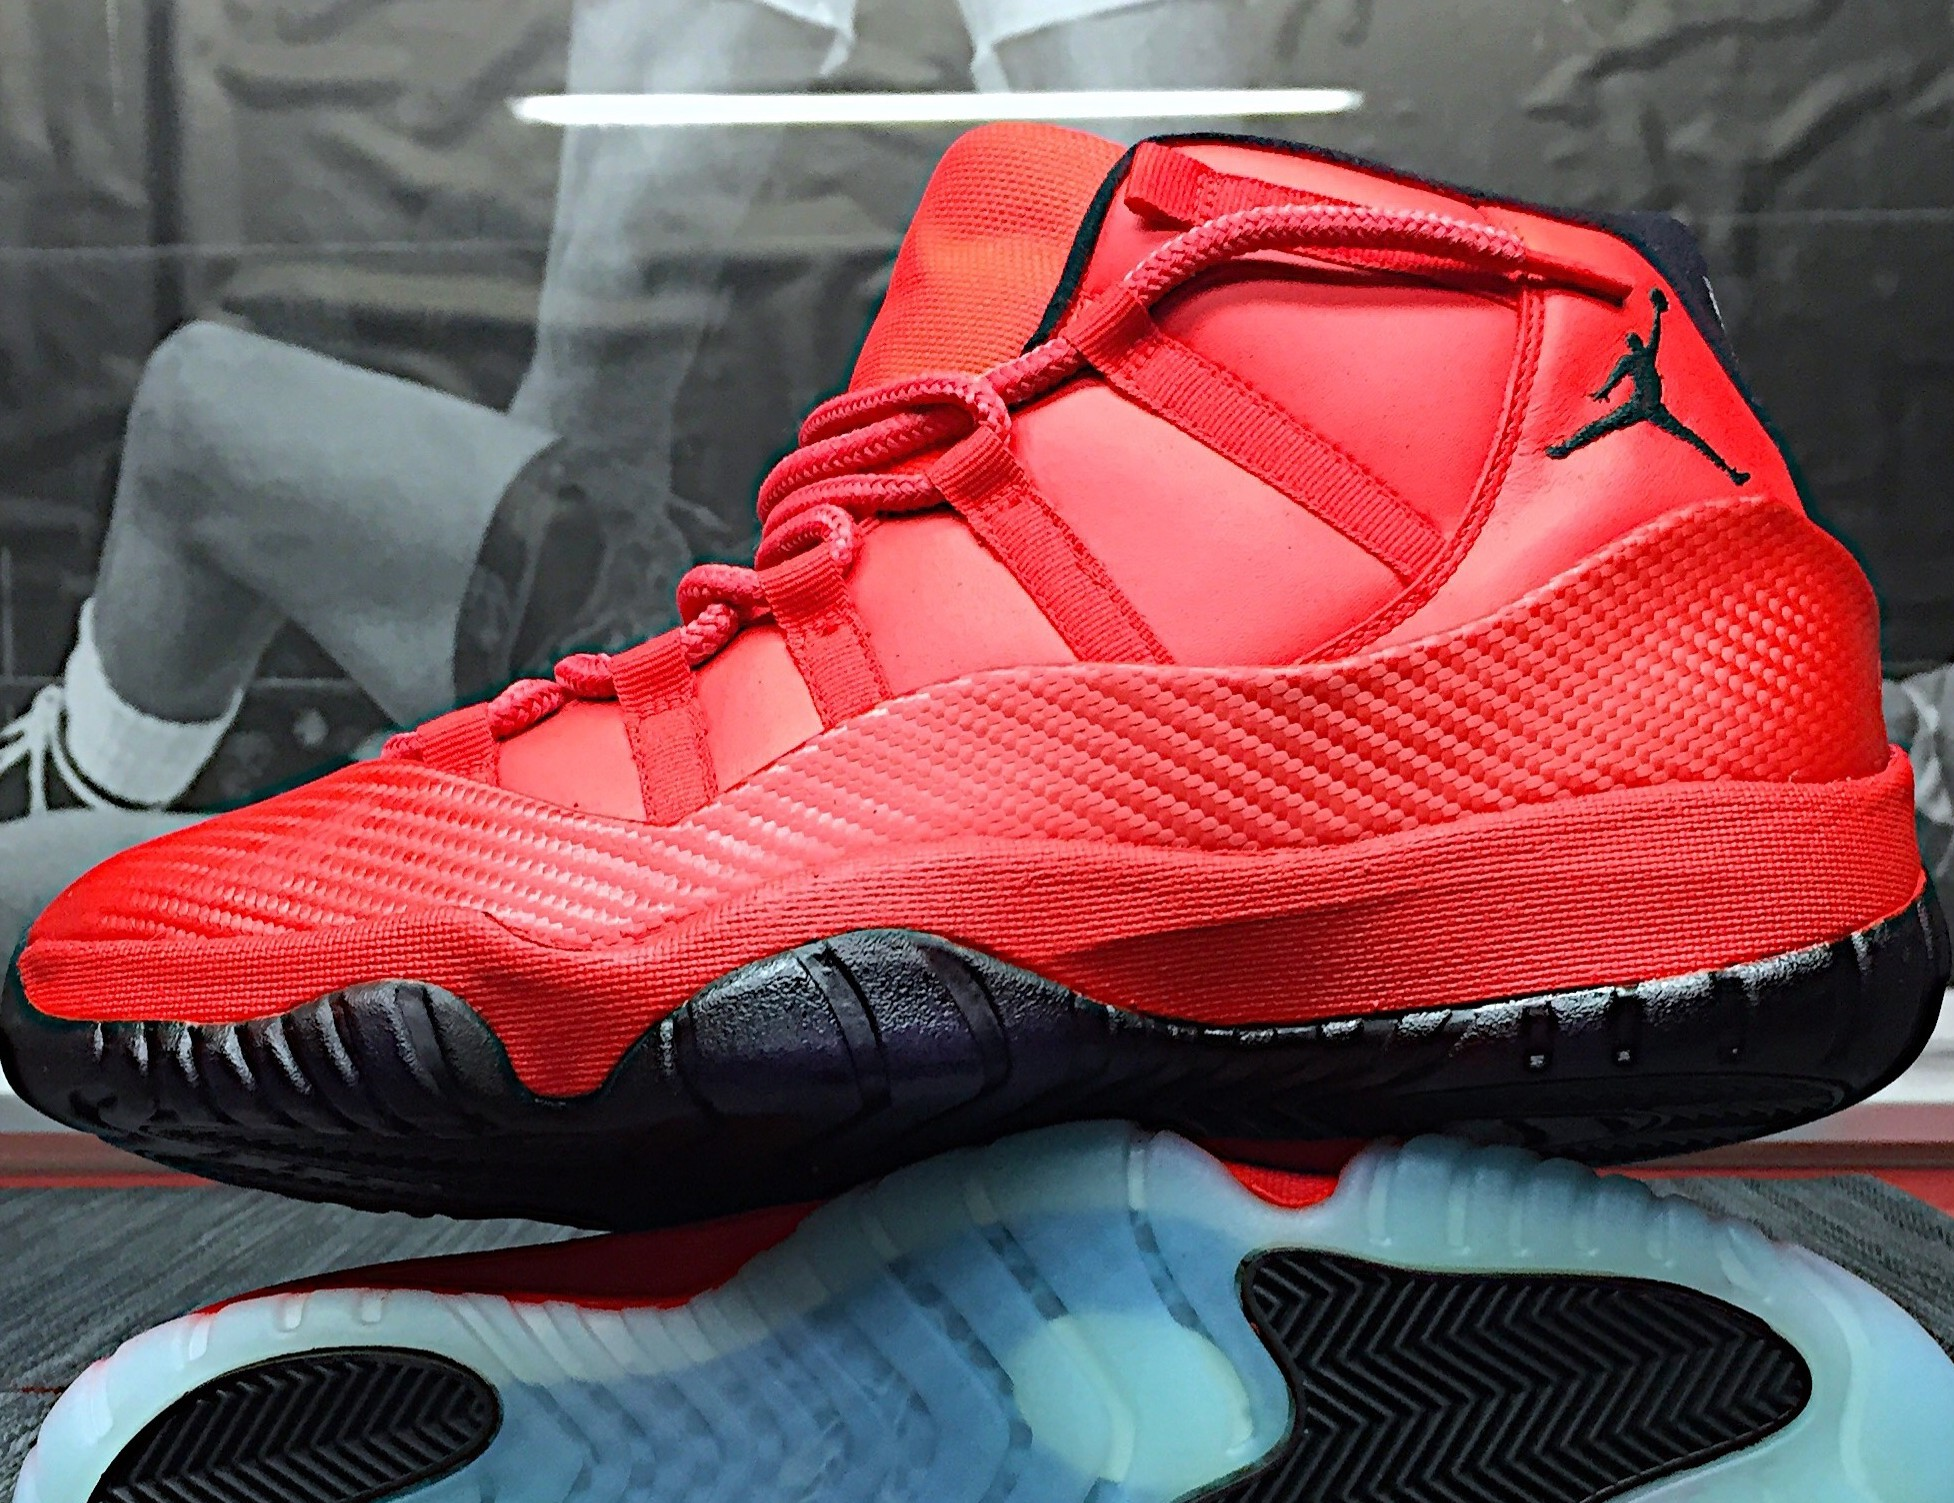 los angeles 78857 dfbd2 Jordan 11 - FERRARIS Red Carbon Fiber Reconstruction